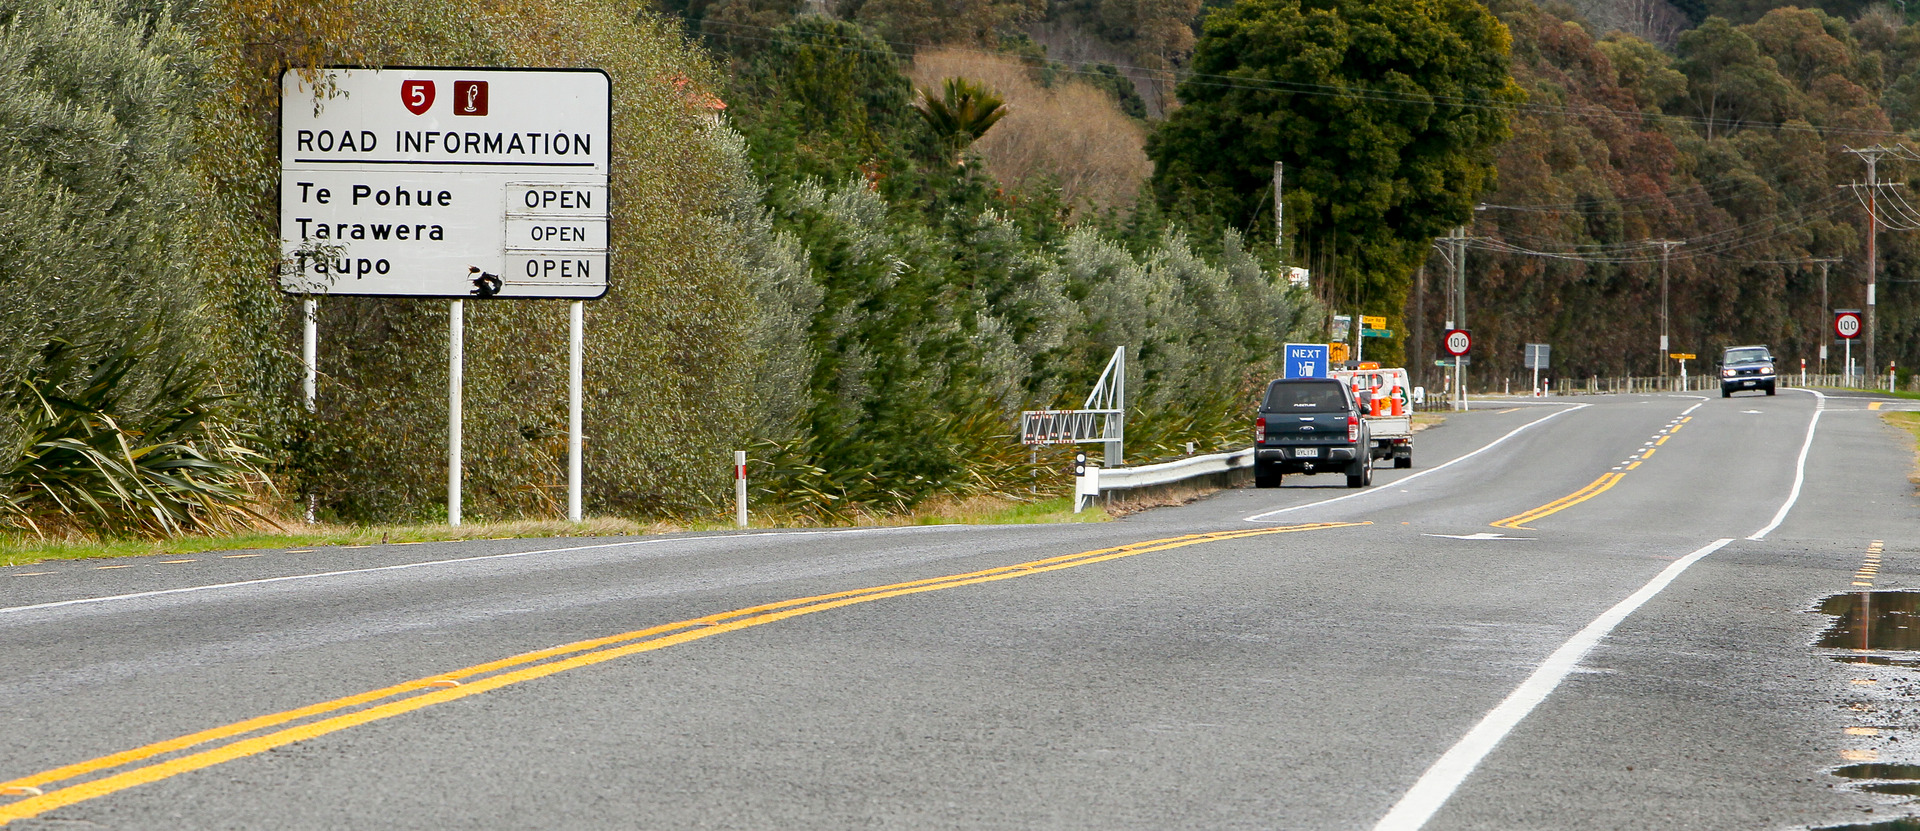 Napier-Taupo Road closed to motorbikes, high-sided vehicles